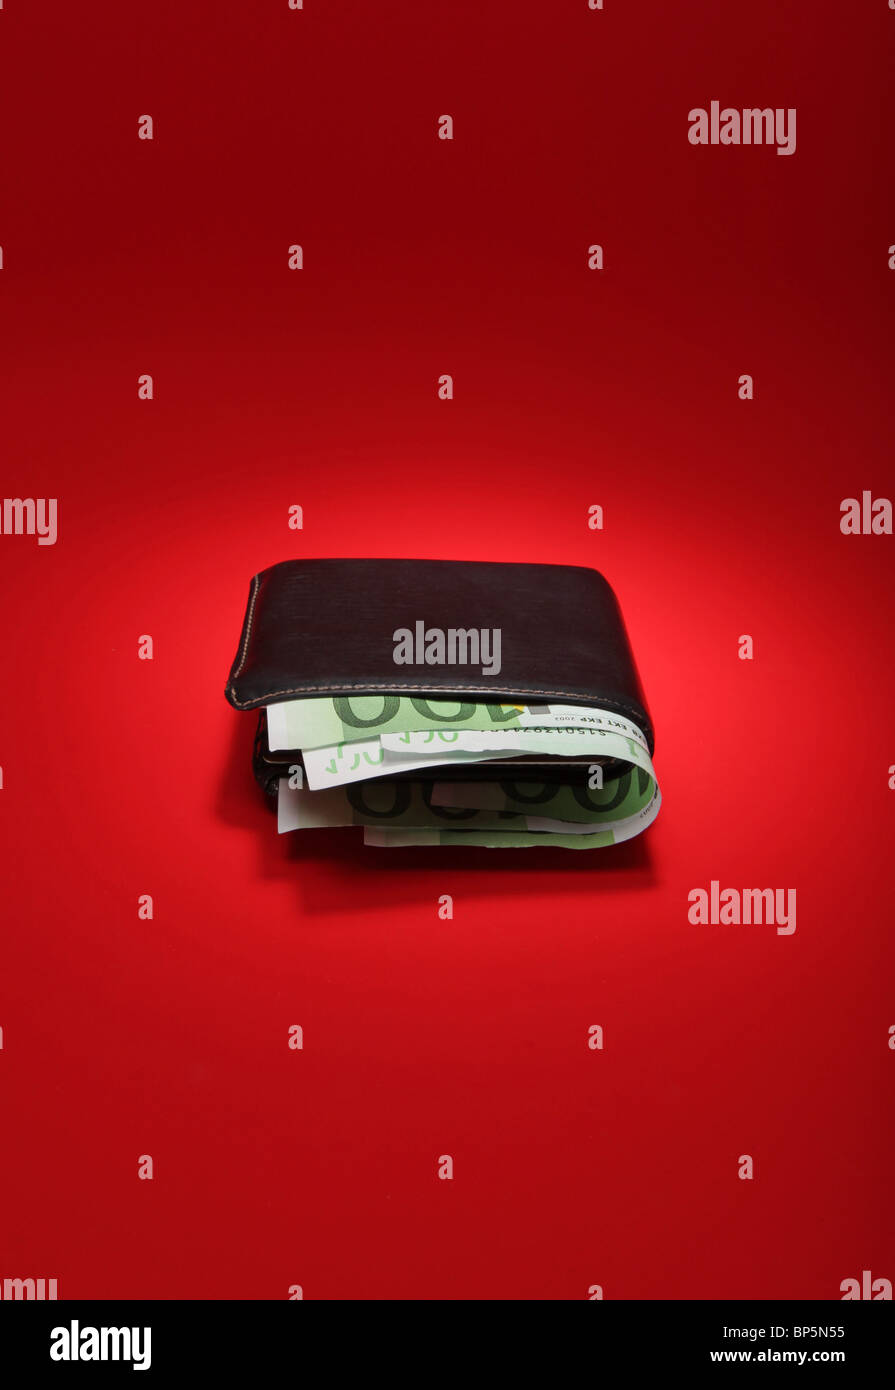 A black leather wallet with money on a bright red background, currency is 300 Euros - Stock Image